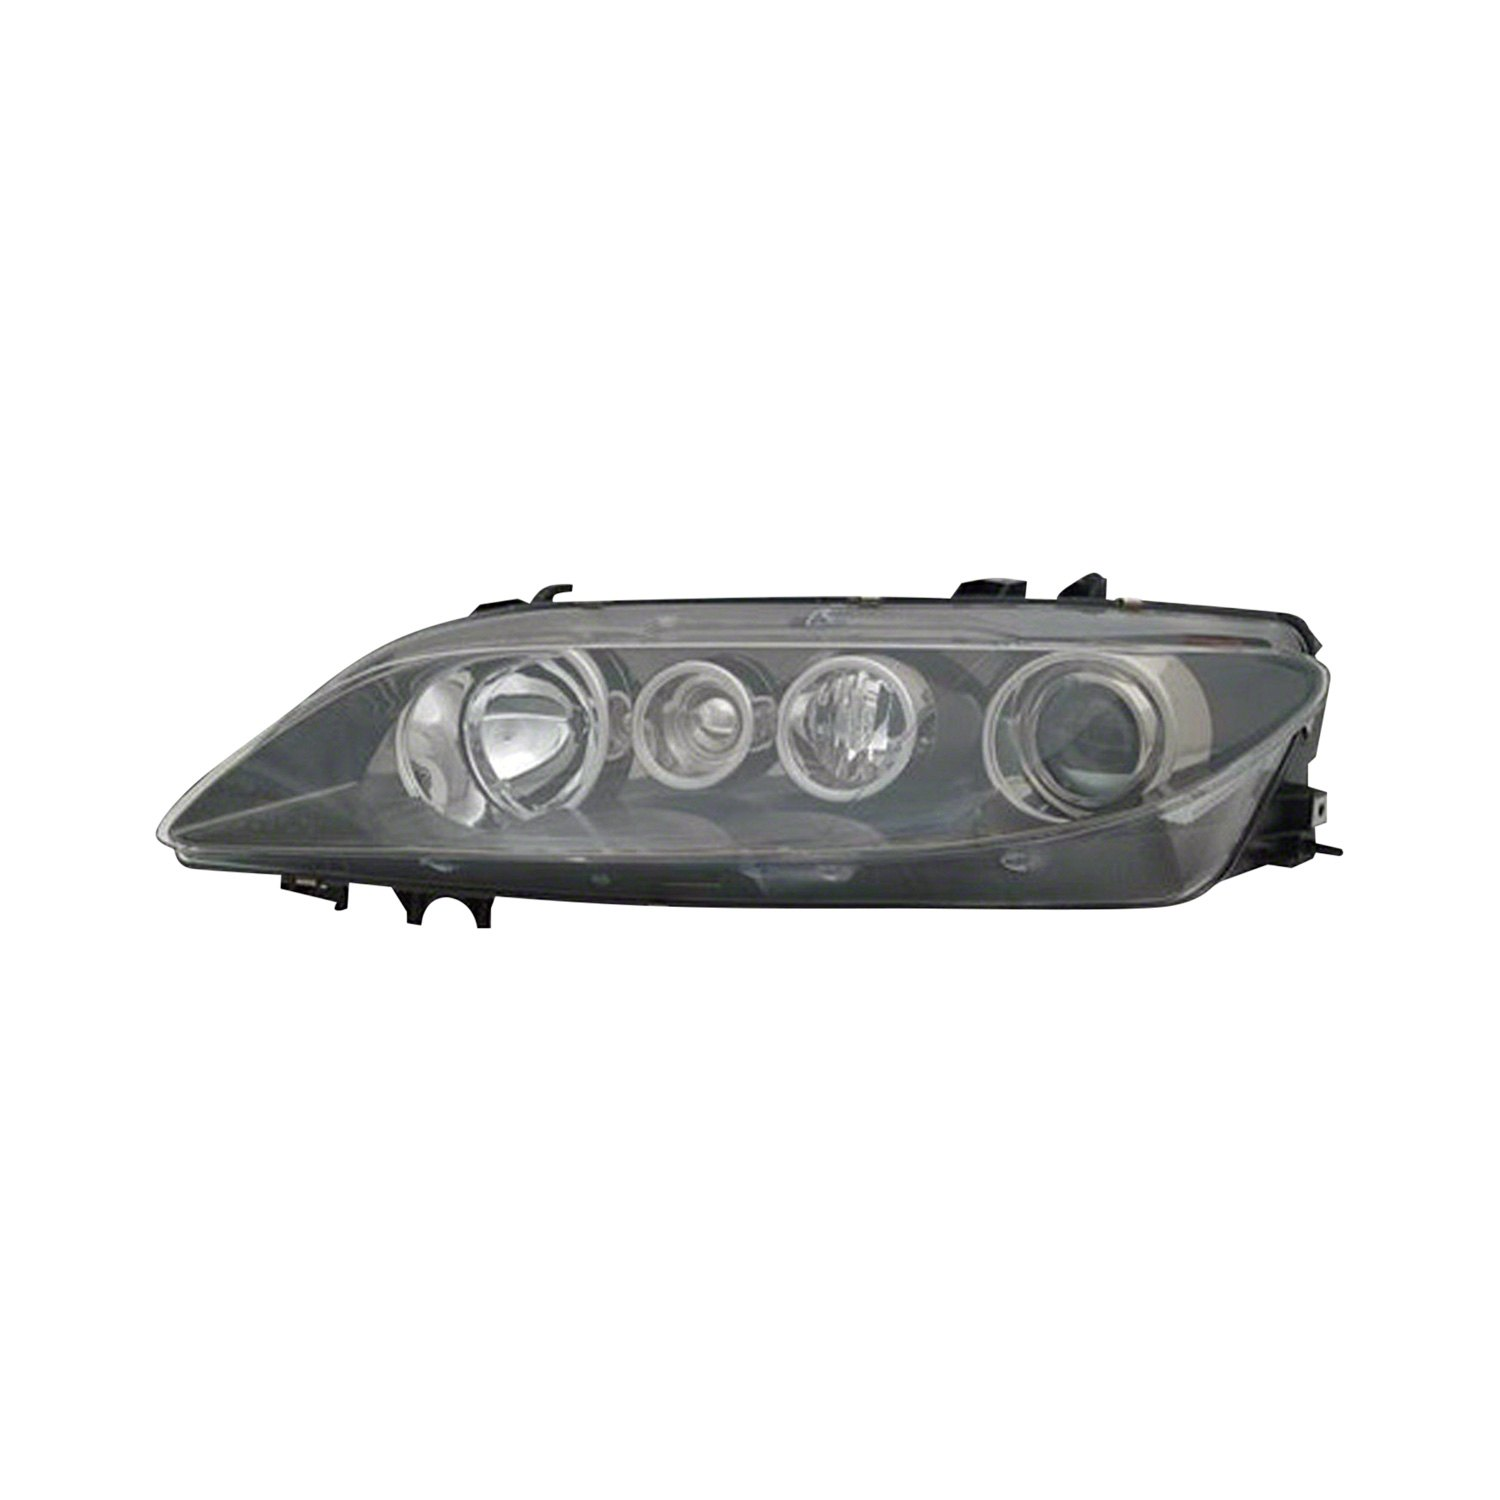 hight resolution of  2006 mazda 6 headlight assembly diagram mazda 6 2006 2007 replacement headlight lens